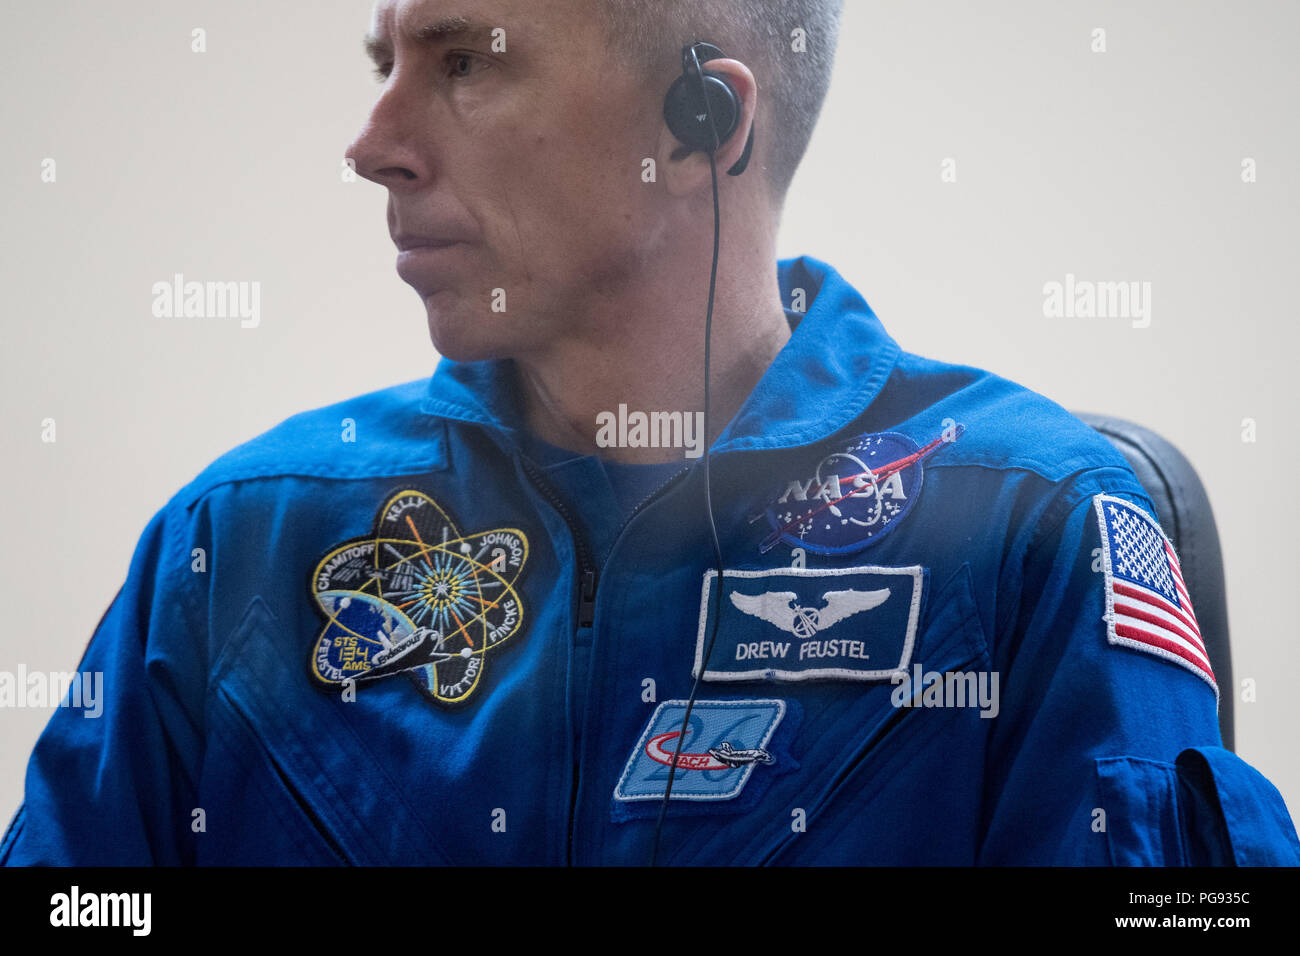 Expedition 55 flight engineer Drew Feustel of NASA is seen in quarantine, behind glass, during a press conference, Tuesday, March 20, 2018 at the Cosmonaut Hotel in Baikonur, Kazakhstan.  Feustel, Oleg Artemyev of Roscosmos, and flight engineer Ricky Arnold of NASA are scheduled to launch to the International Space Station aboard the Soyuz MS-08 spacecraft on Wednesday, March, 21. Stock Photo